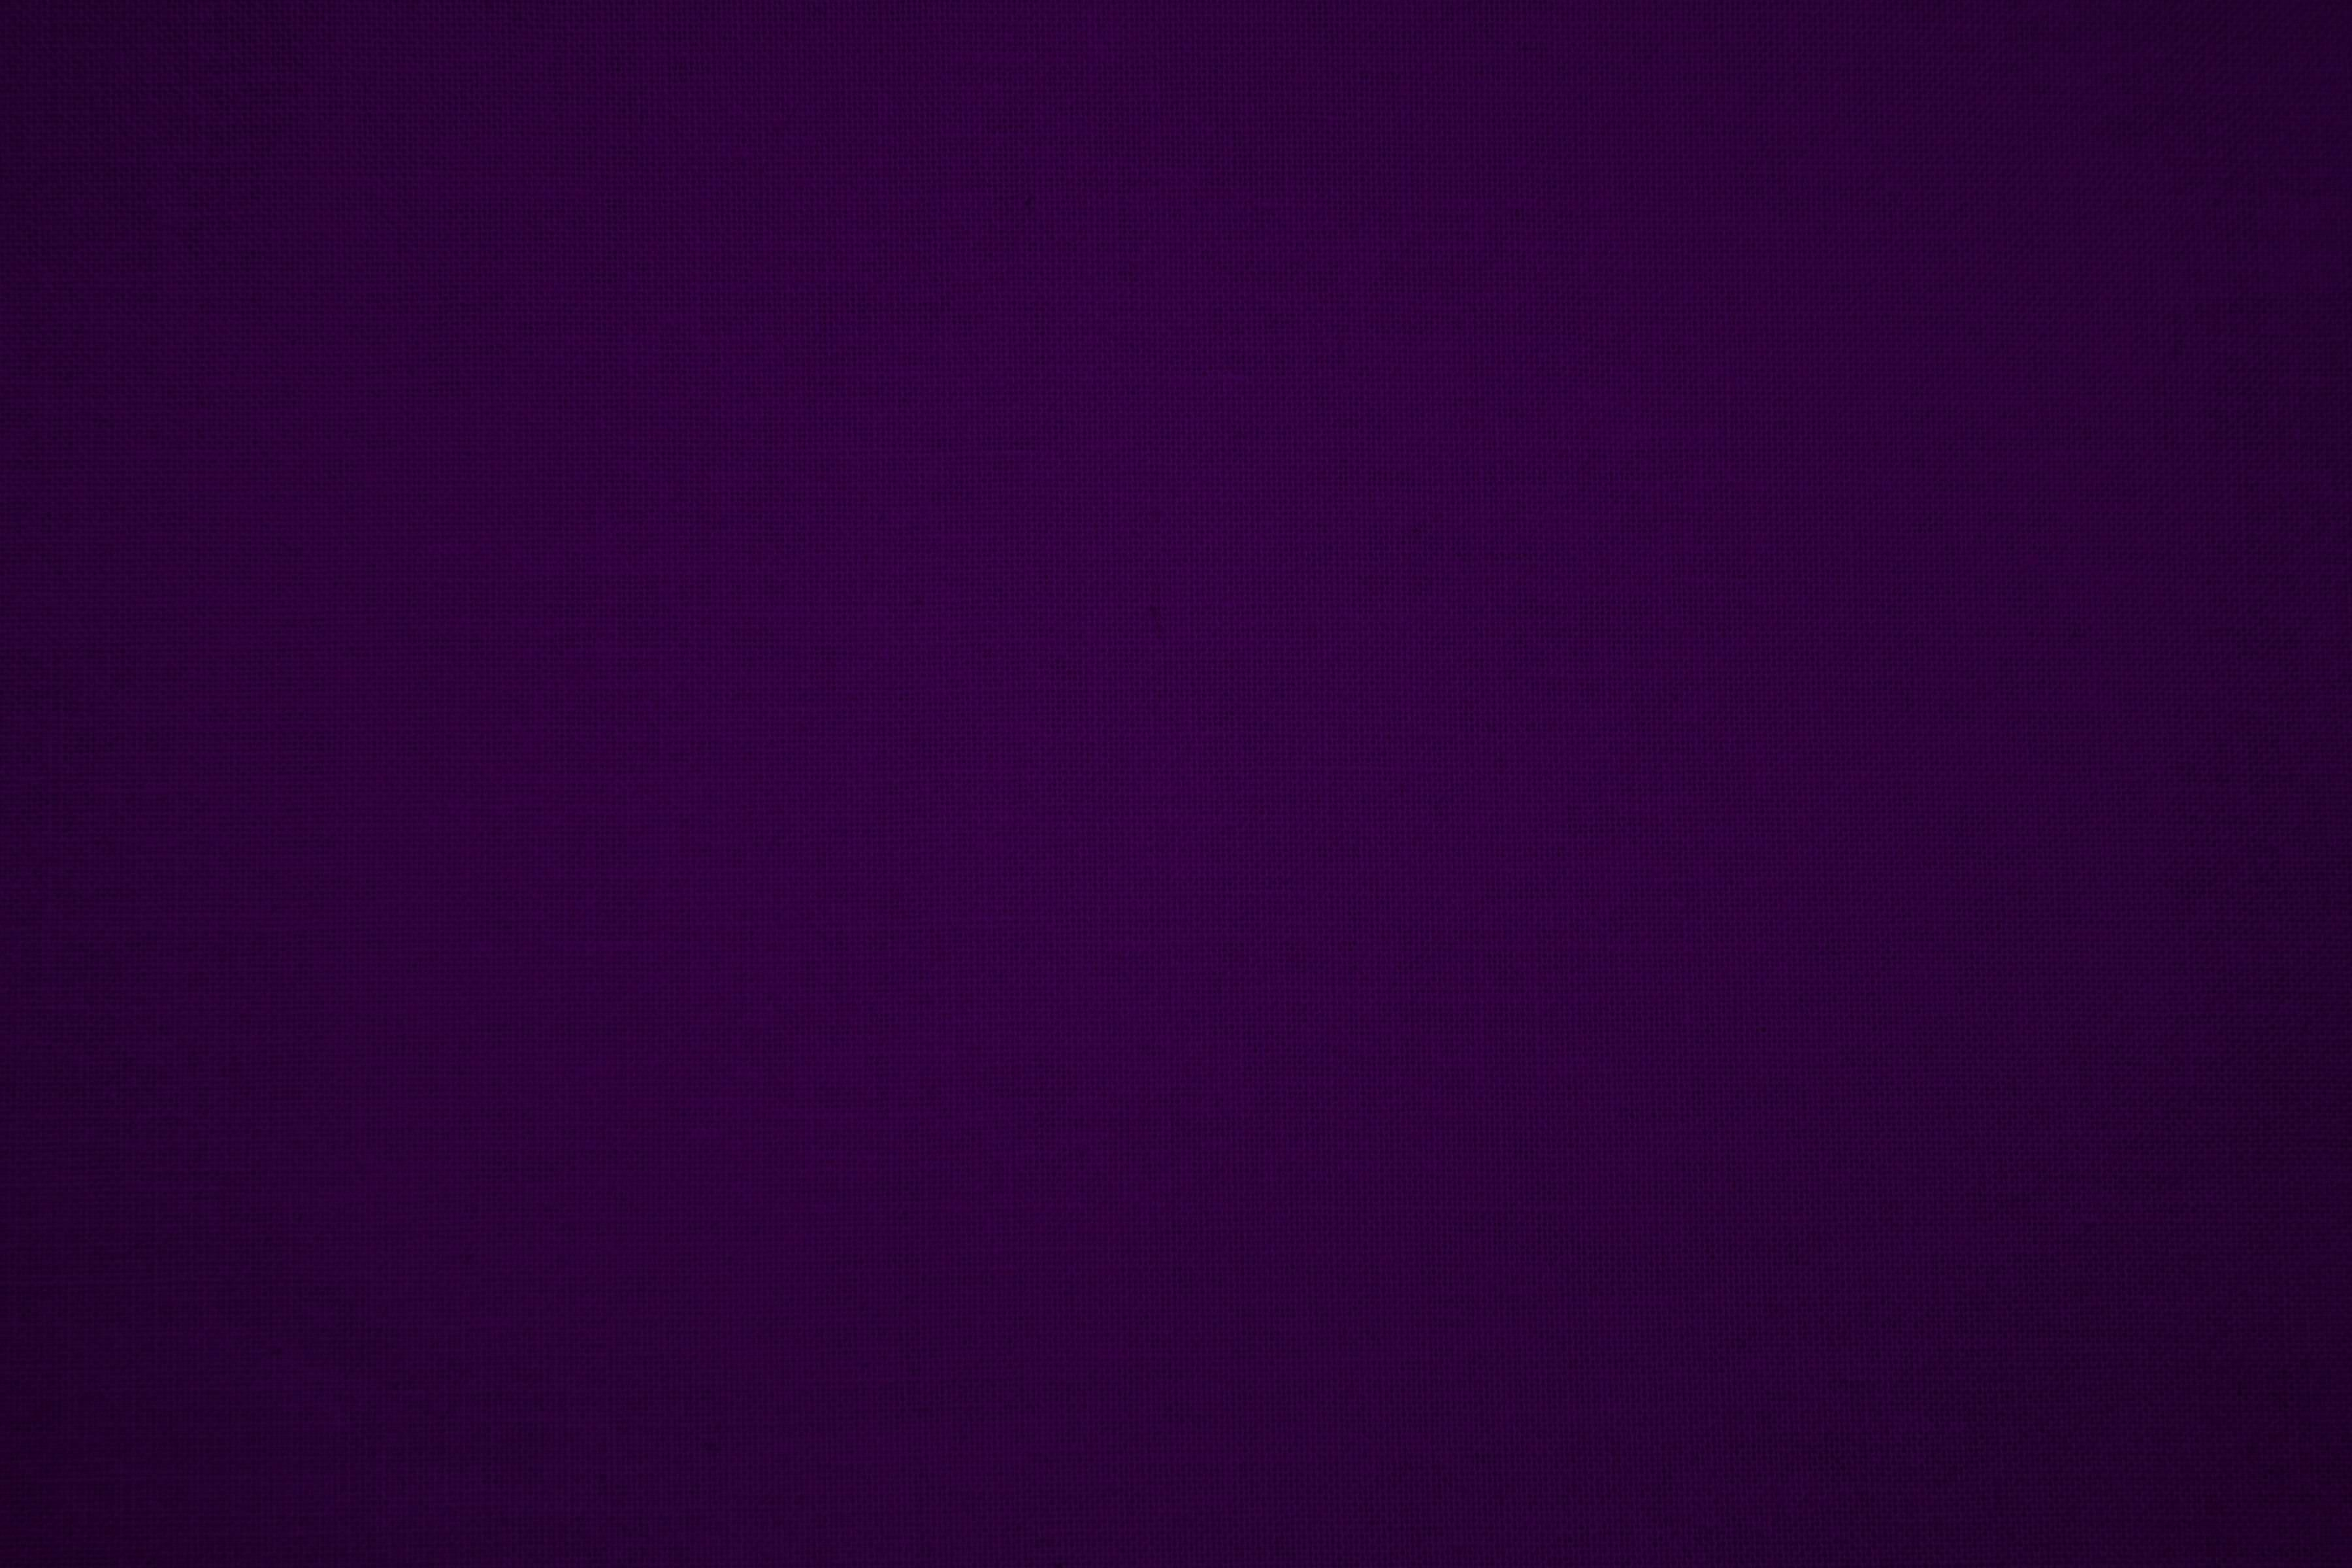 210 Amazing Purple Backgrounds  Backgrounds  Design Trends